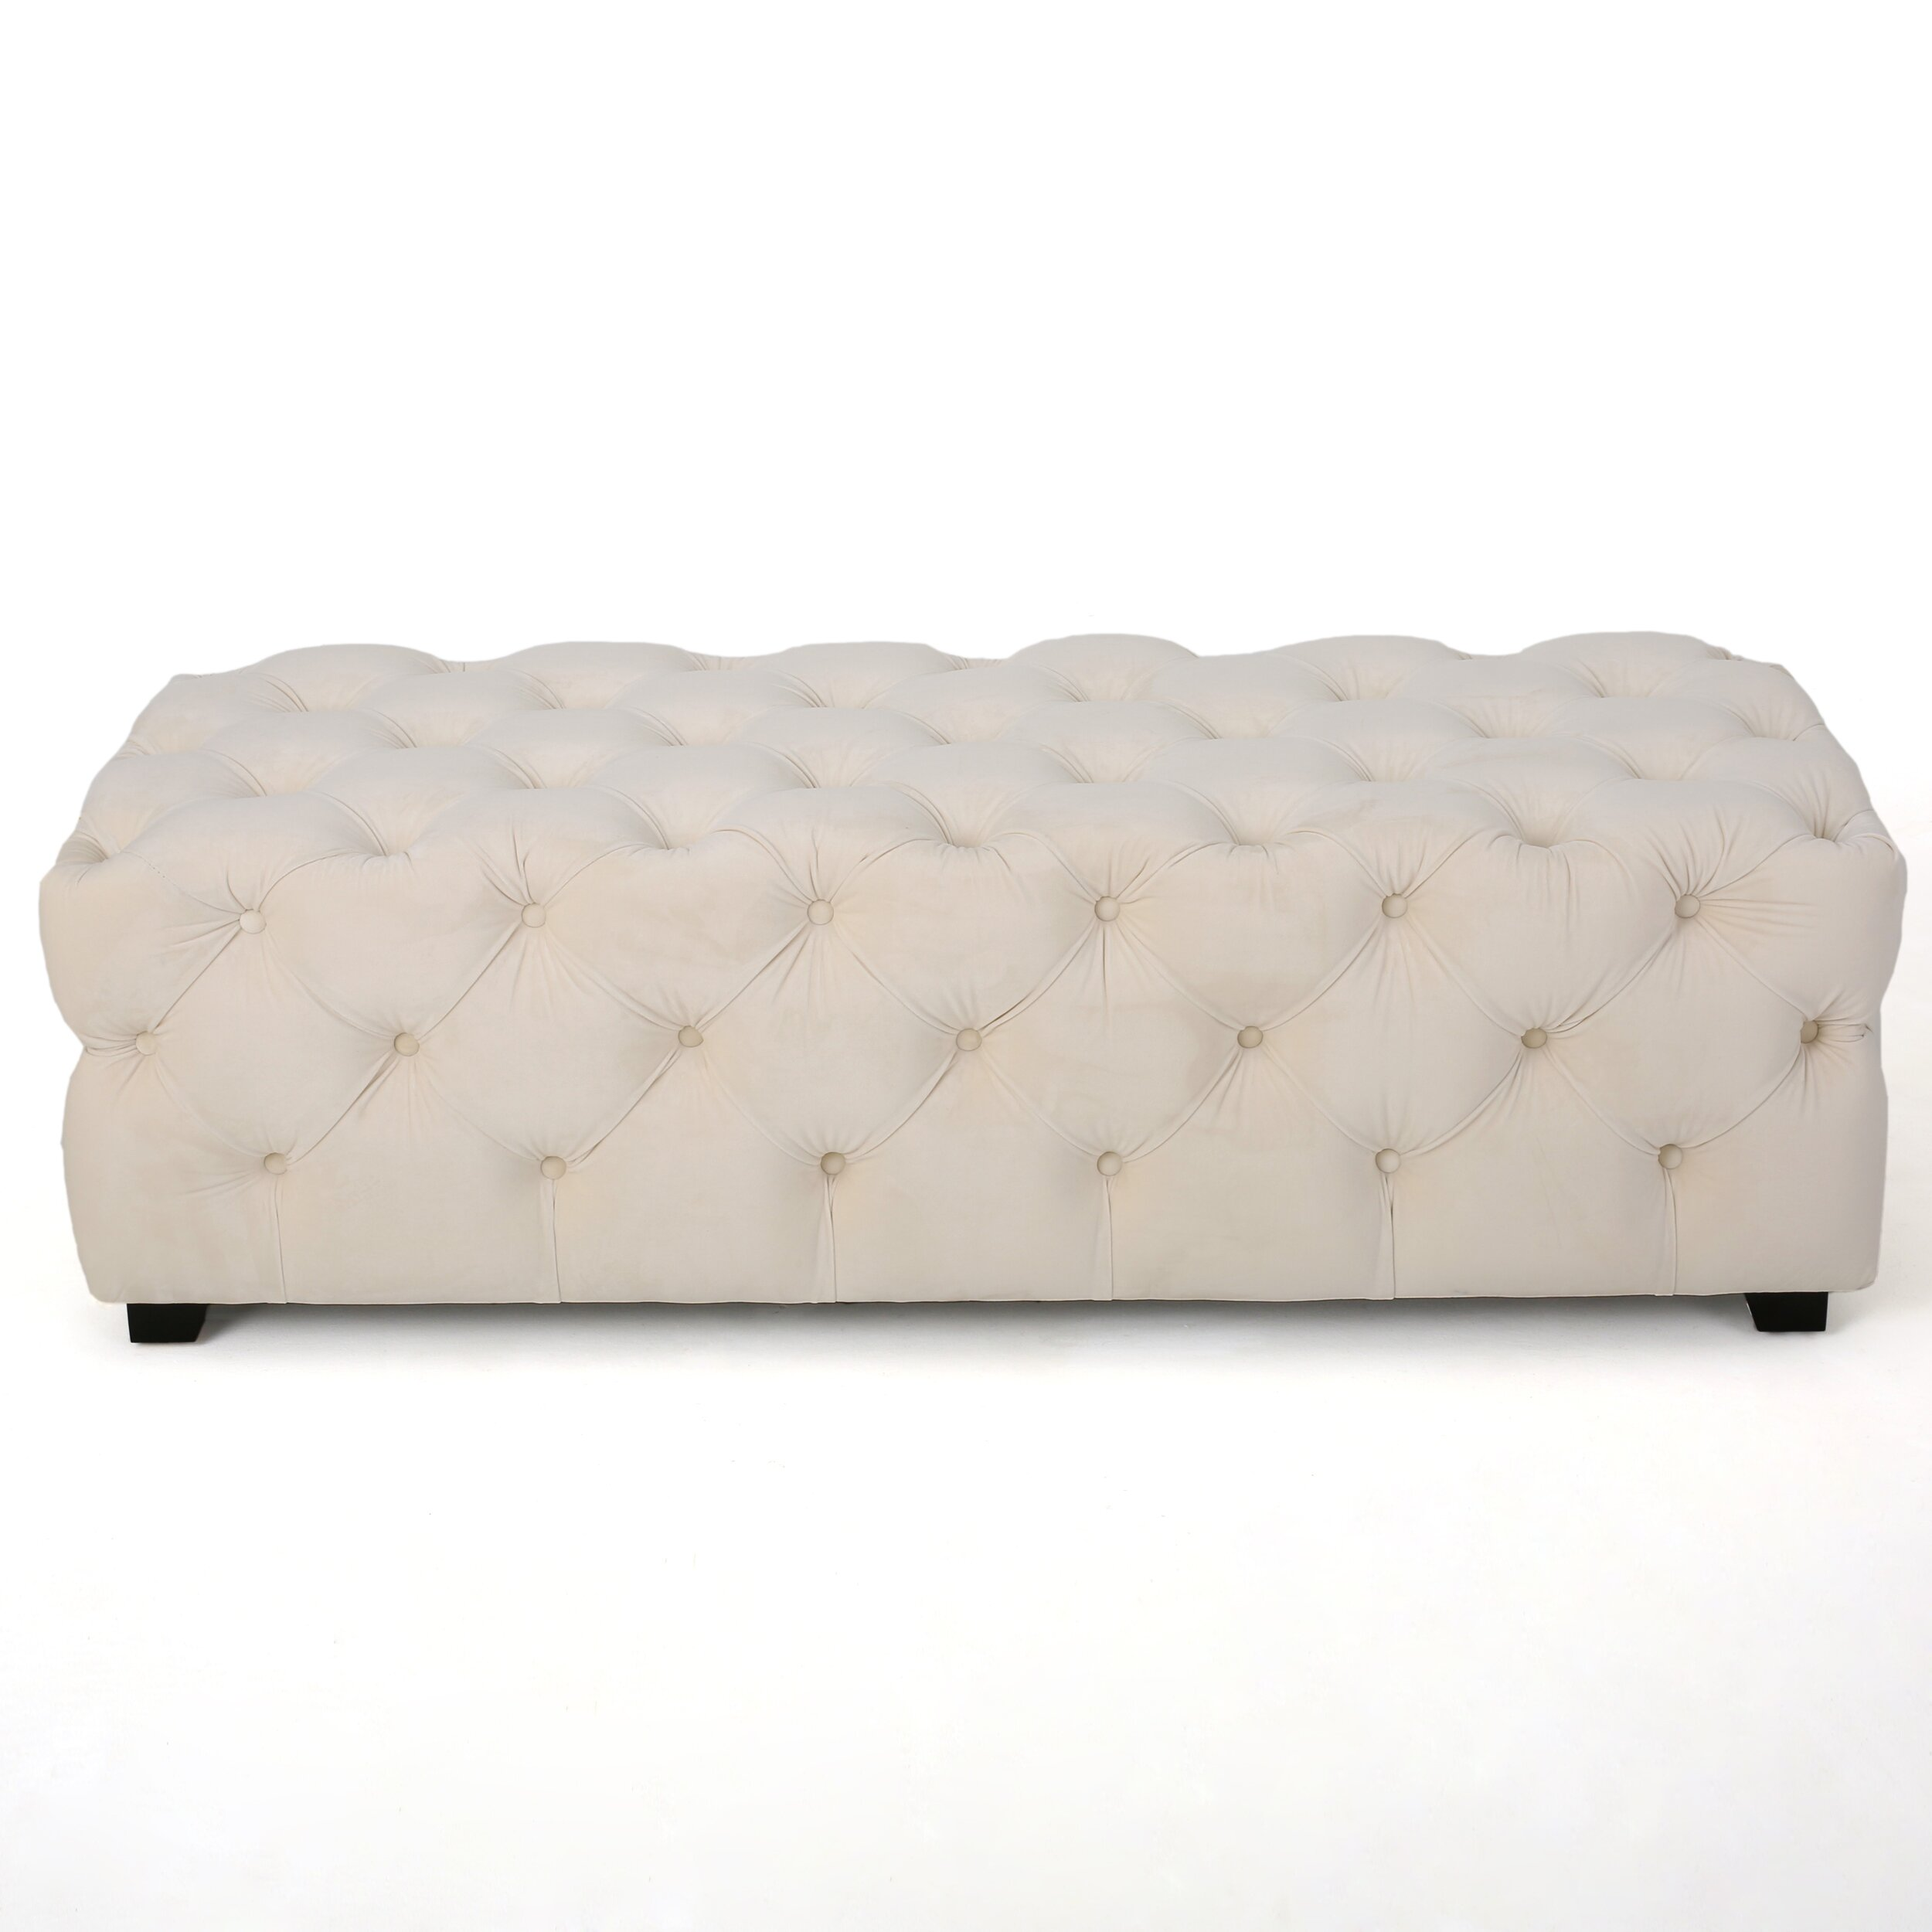 Barrett Tufted Velvet Rectangular Ottoman Wayfair